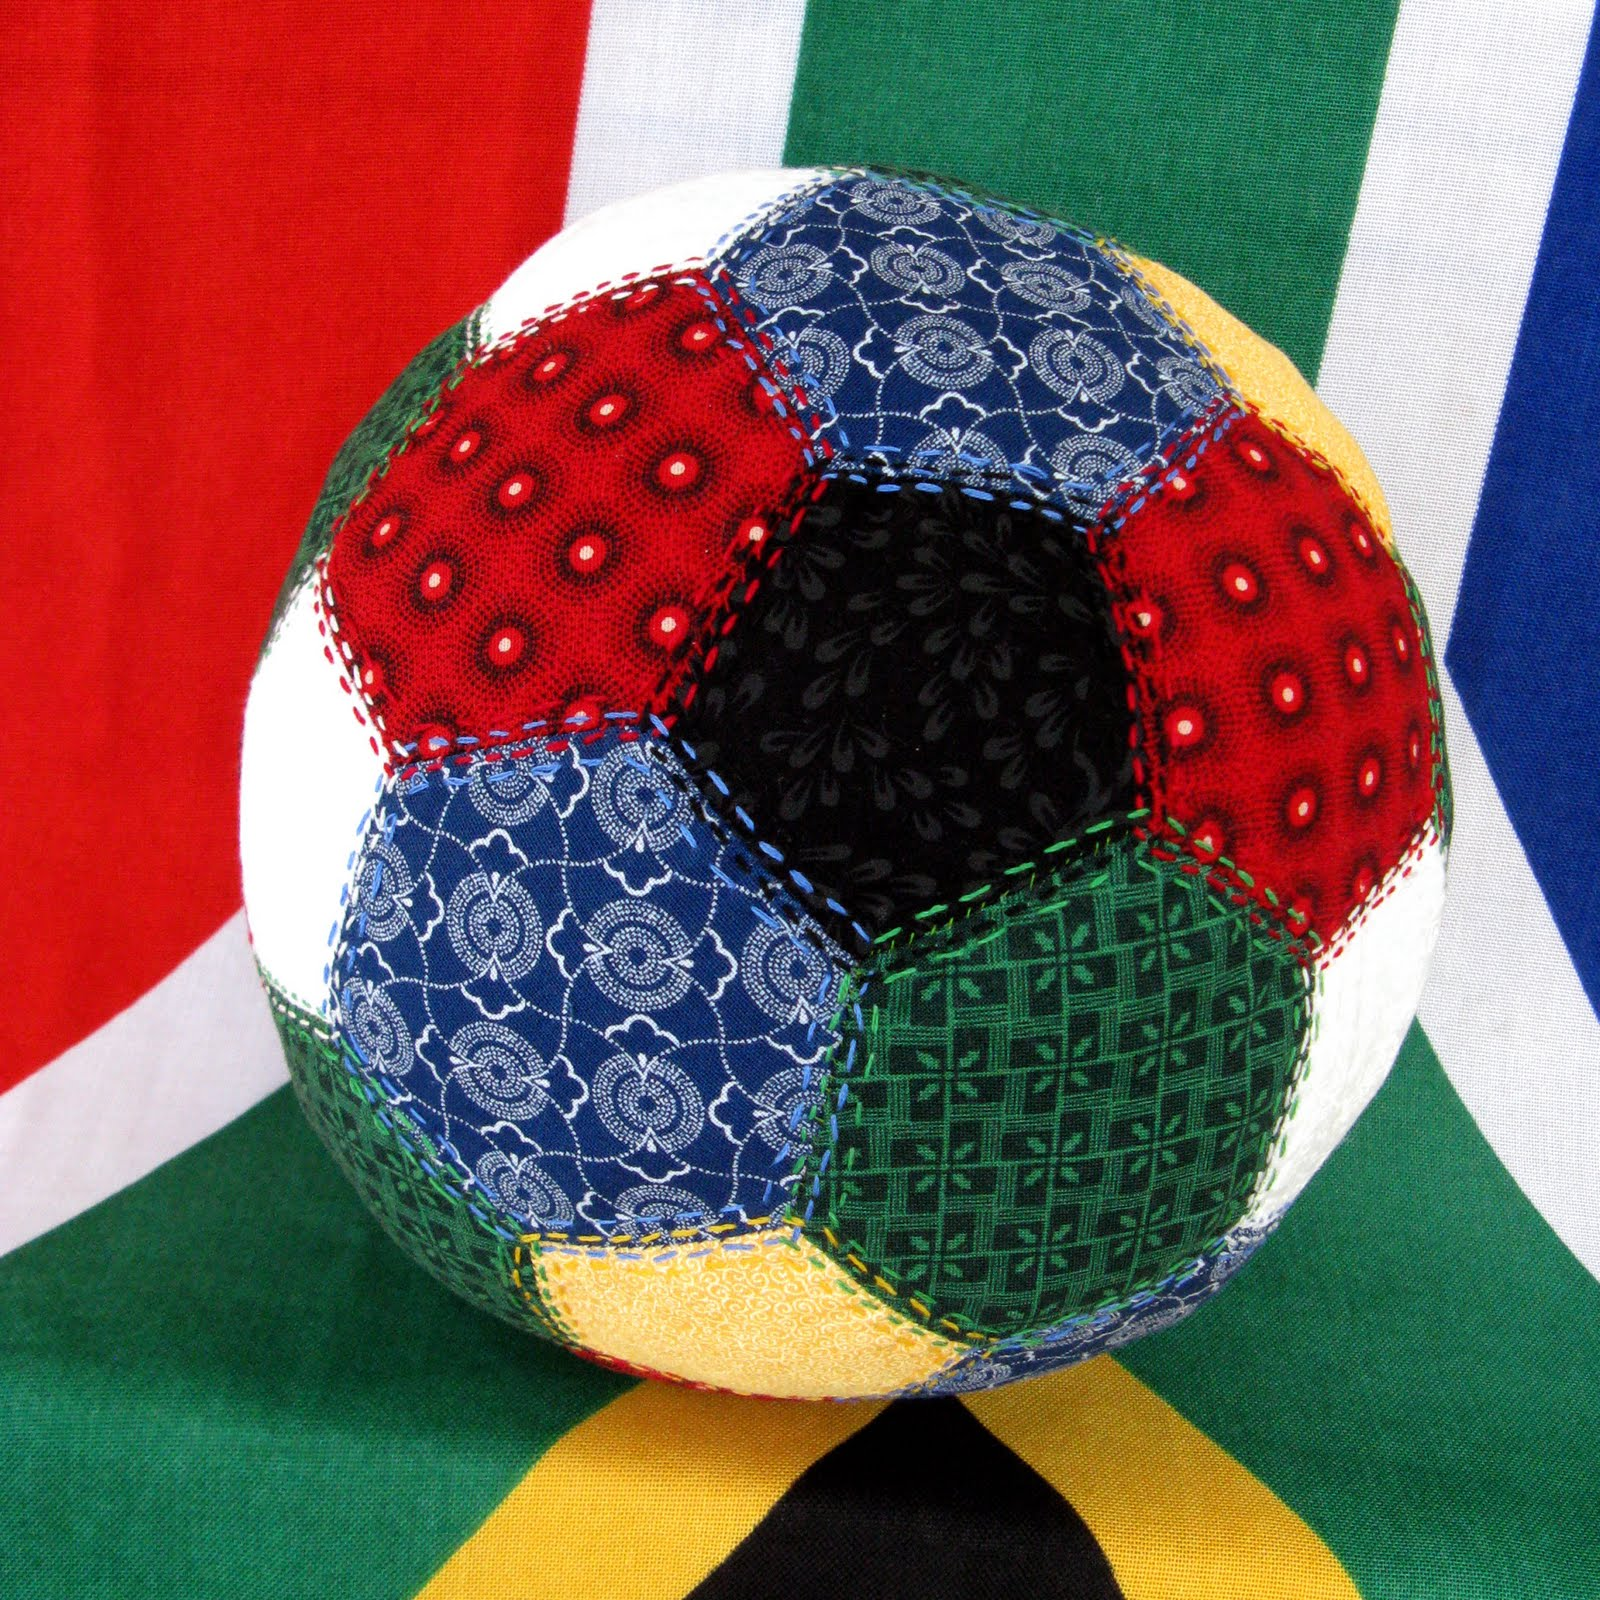 Soccer ball craft ideas - Soccer Ball Update